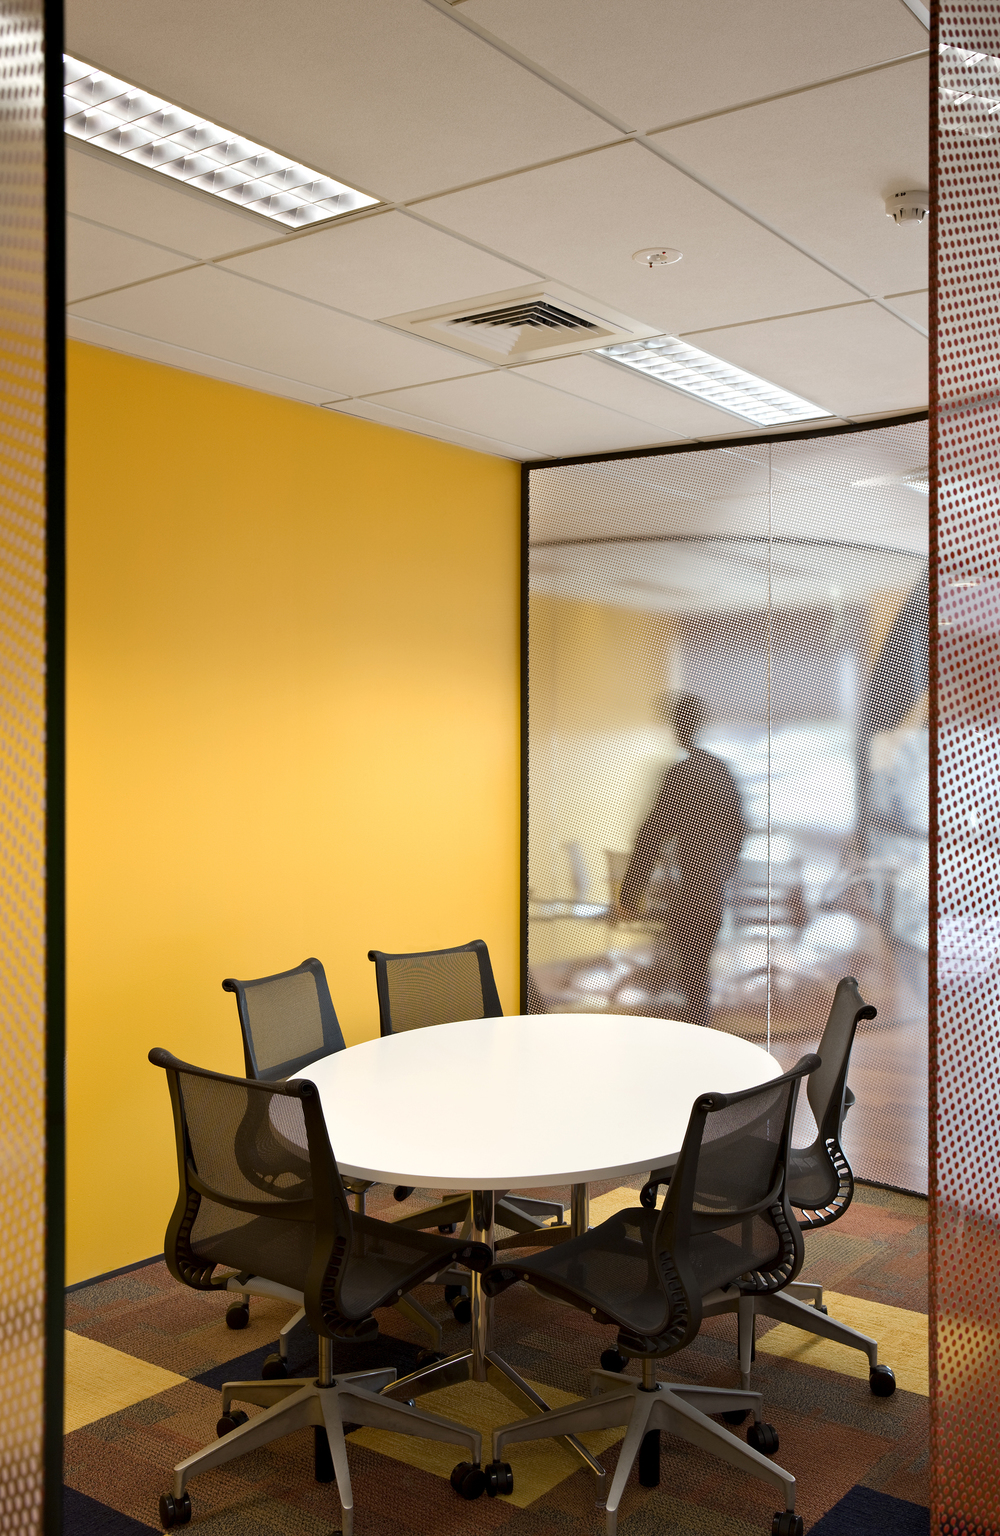 Mercury_MeetingRooms_L1080_M.jpg